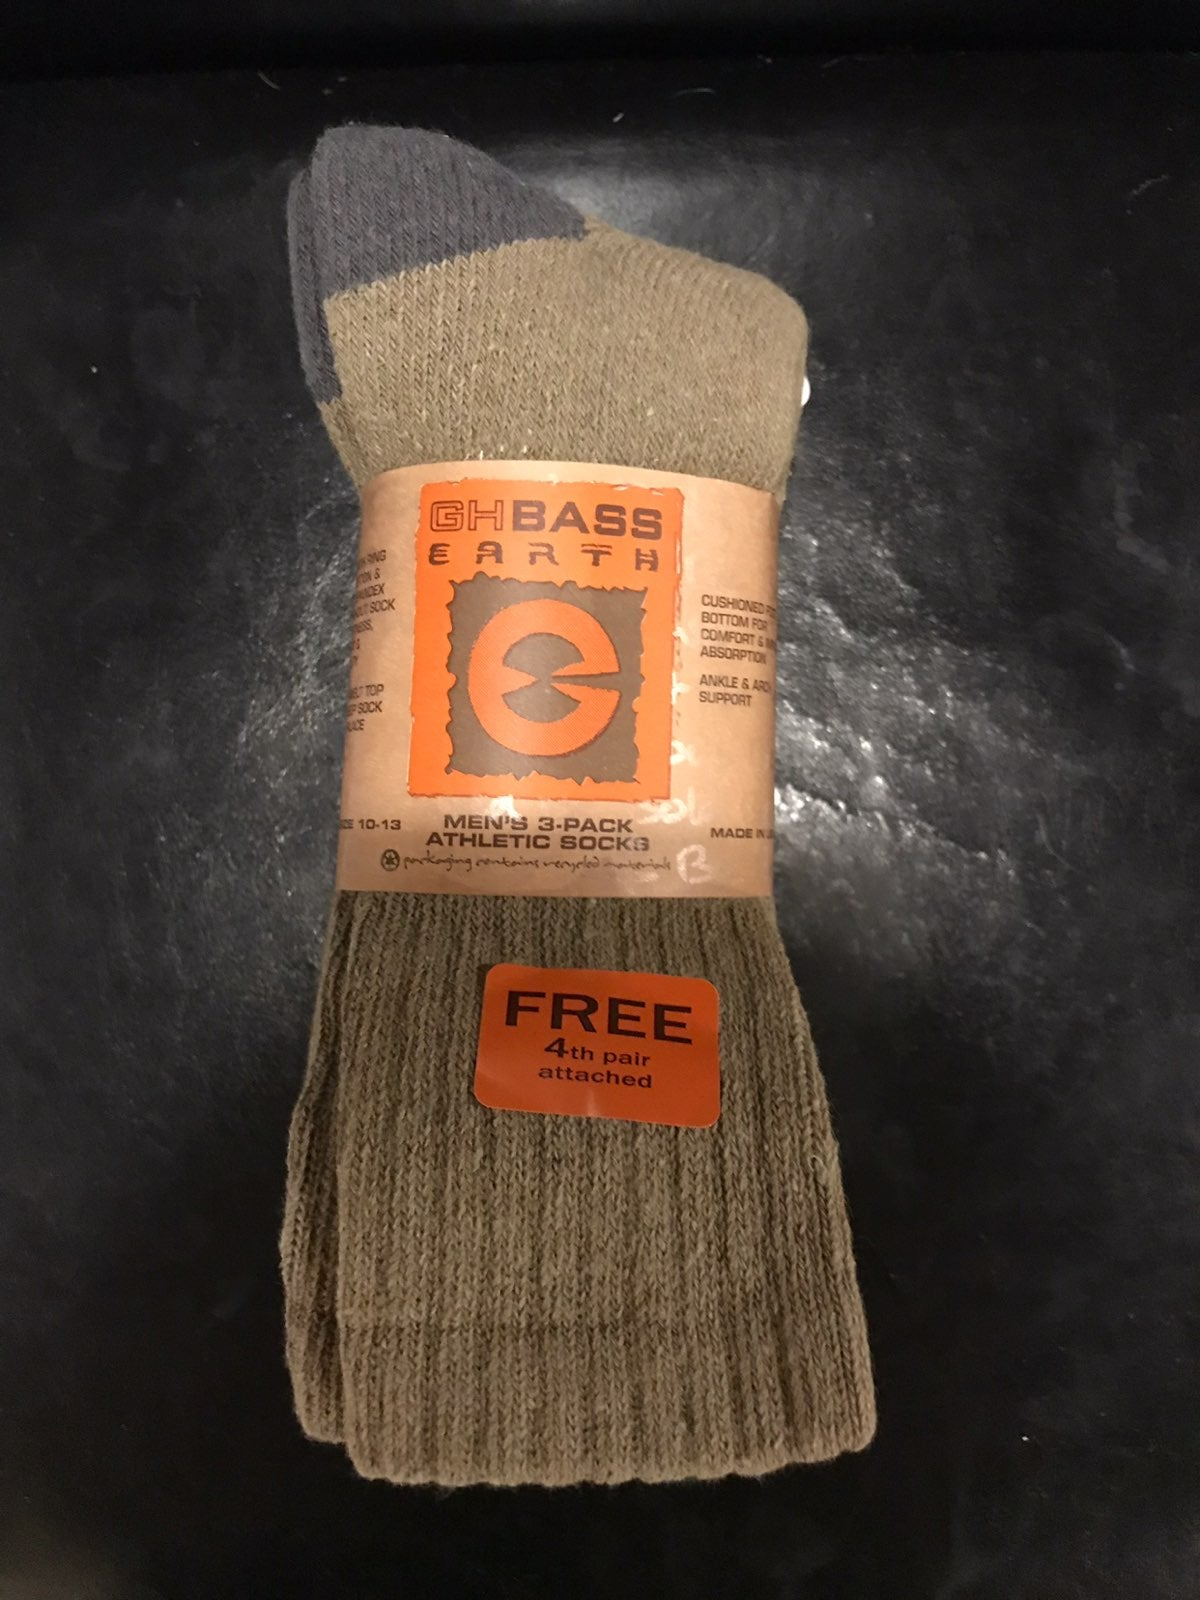 Mens GH Bass atheltic socks size 10-13